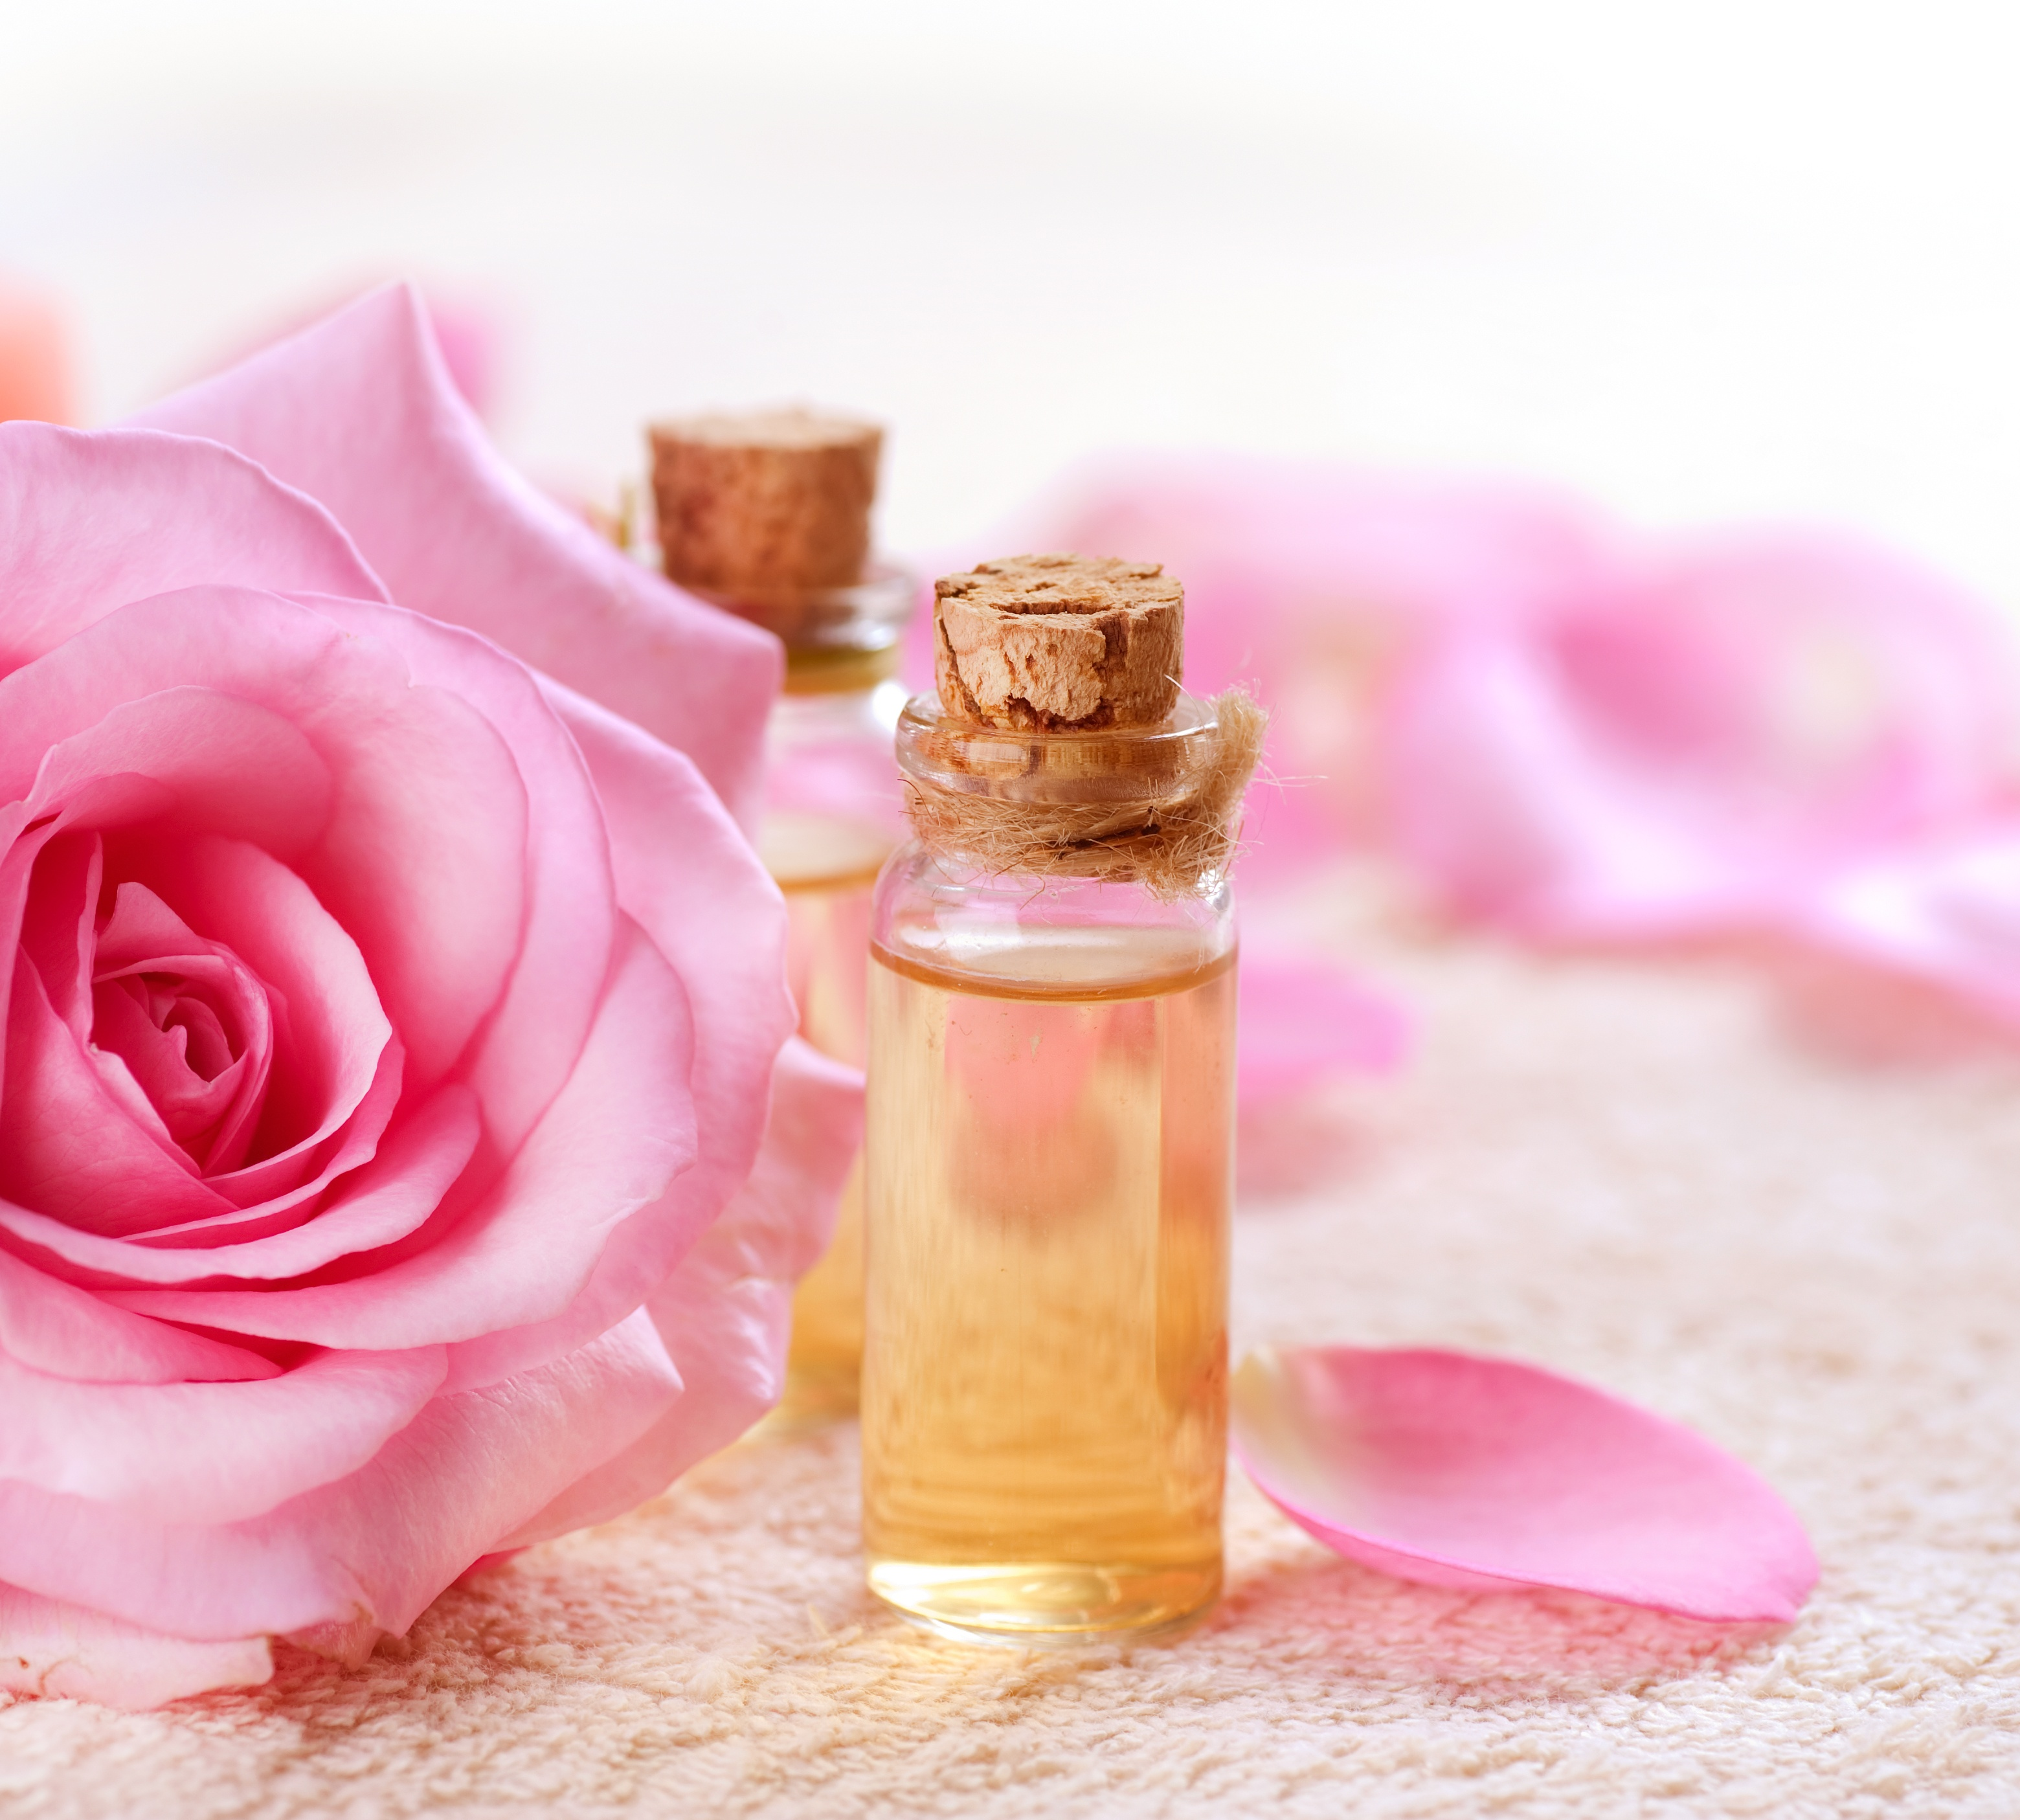 Best quality natural essential oils including Rose - Essential Rose Oil, Shahi Gulab, and other fragrance & perfume oils at the most discount rates by BMV Fragrances in UP, India.